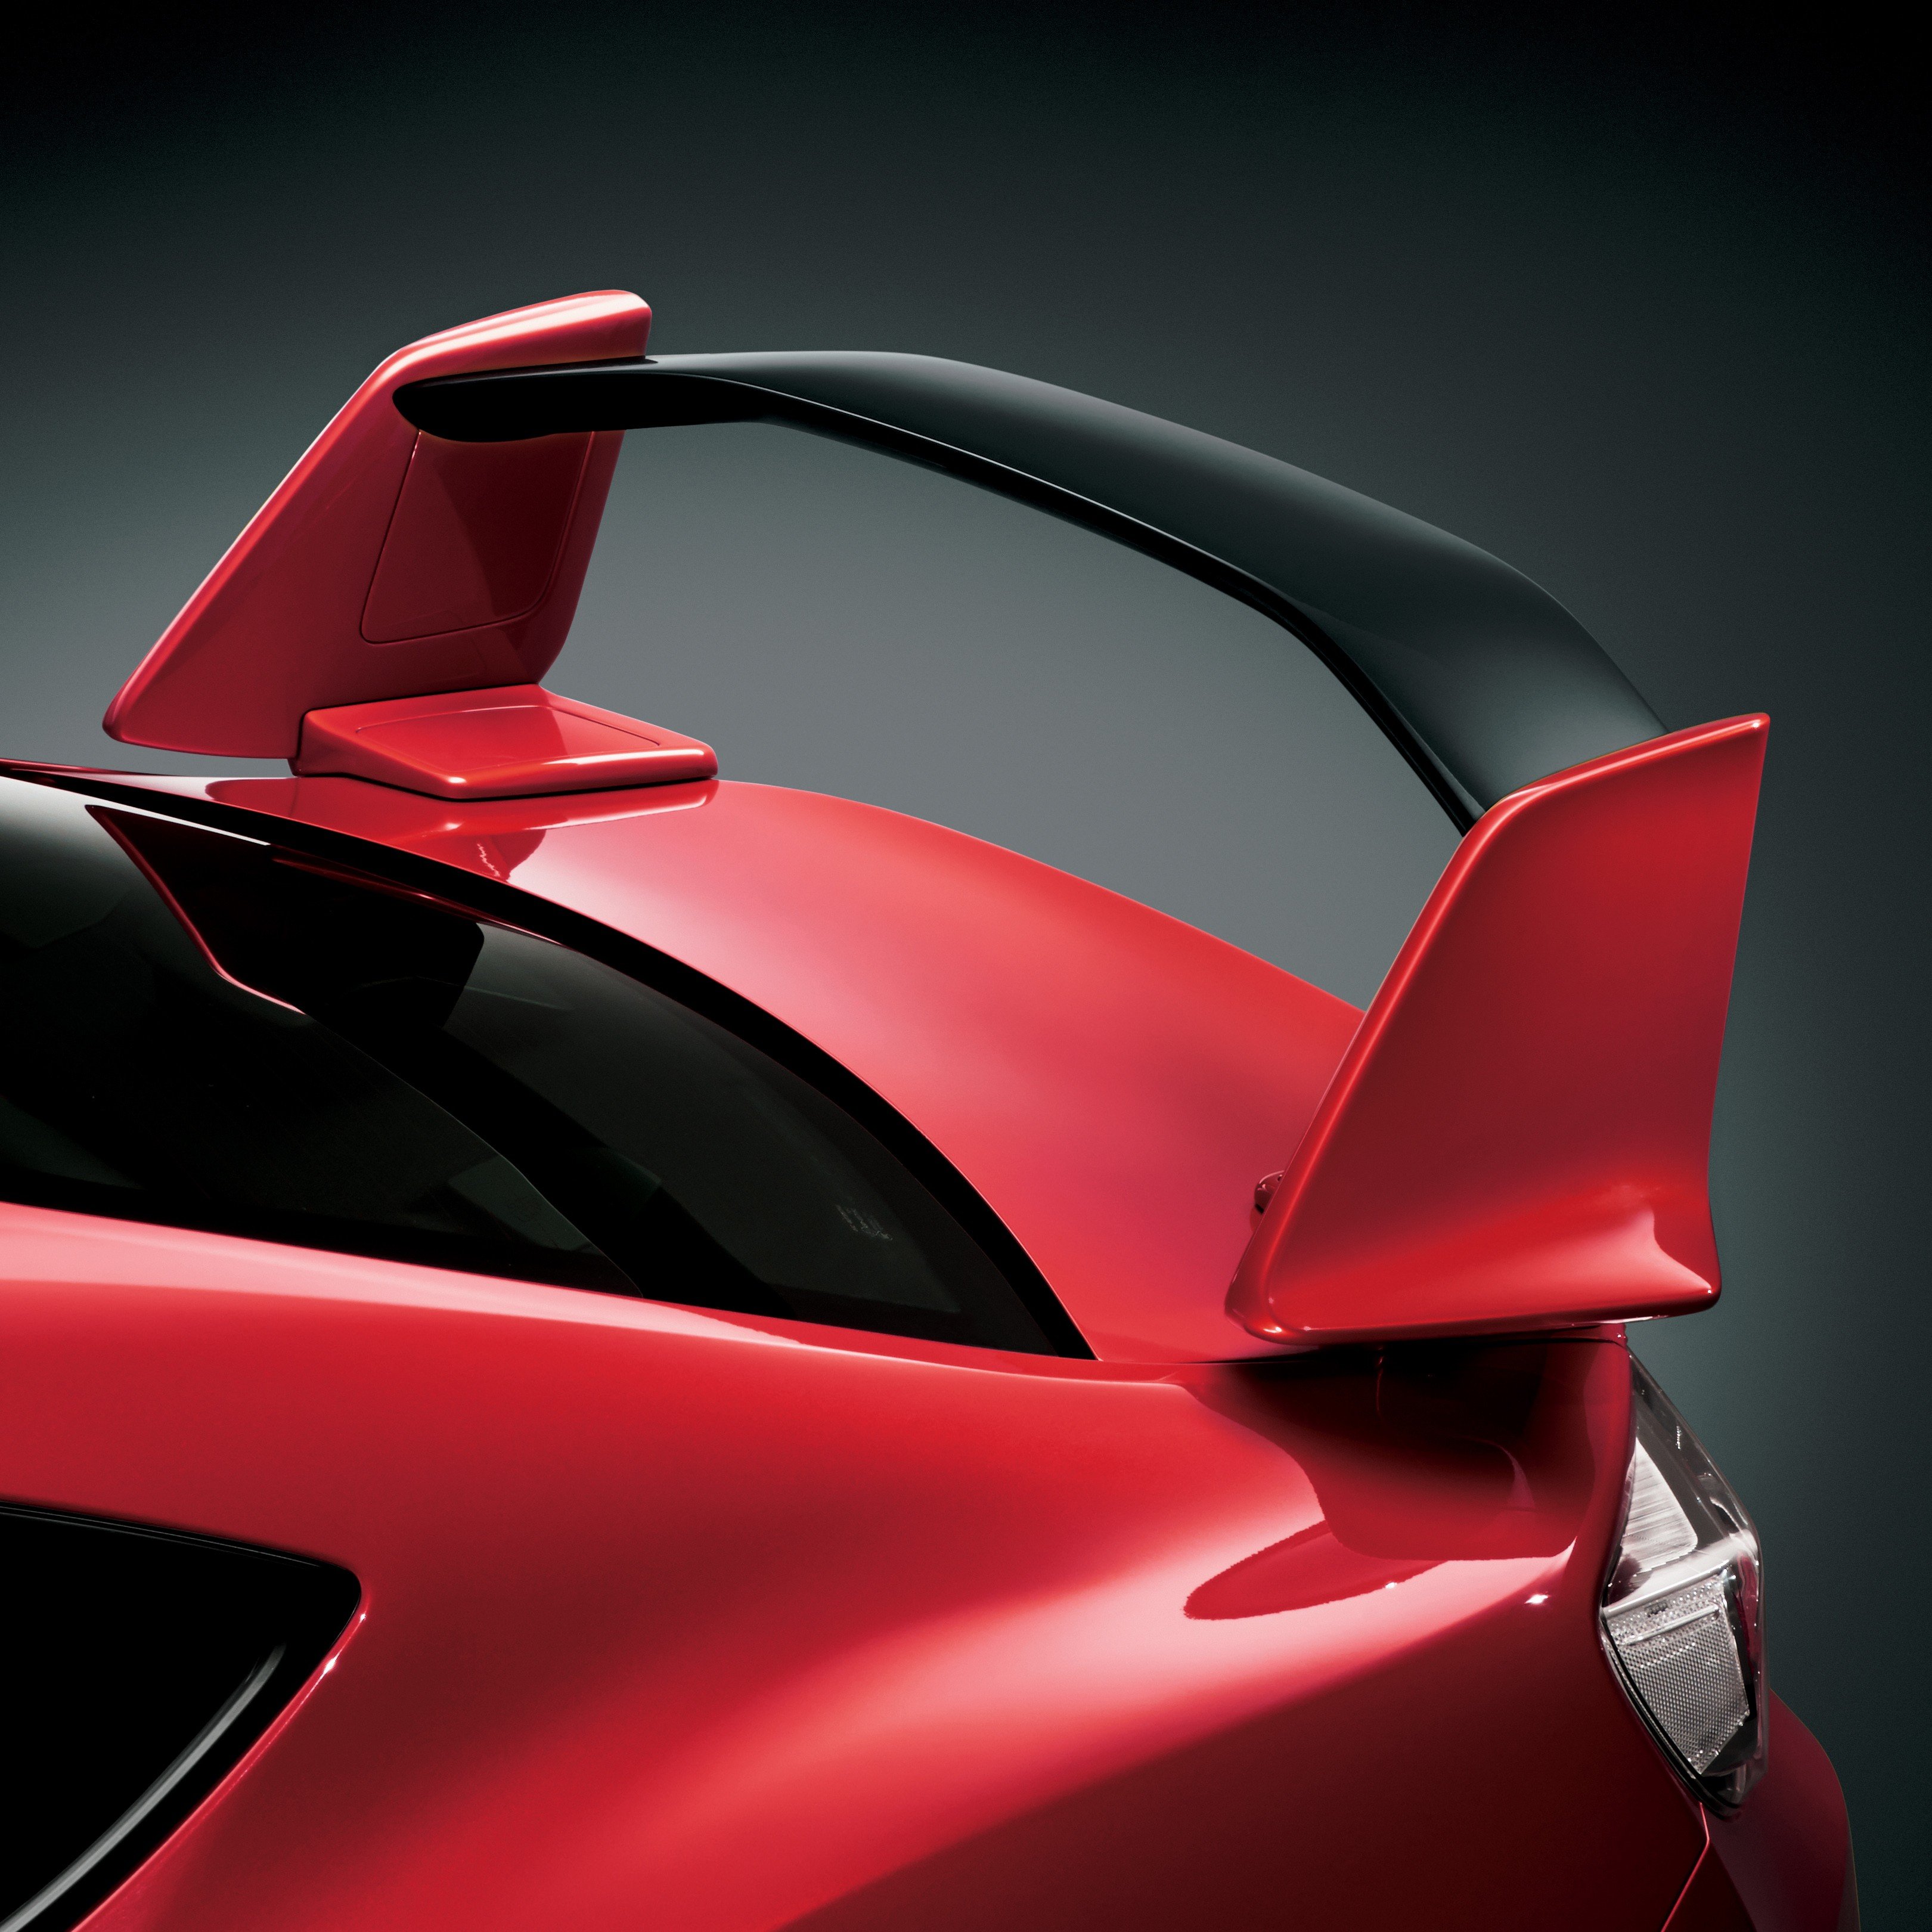 toyota 86 aero gt wing package japan launched autoevolution spoilers pimped coupe box brz under hood